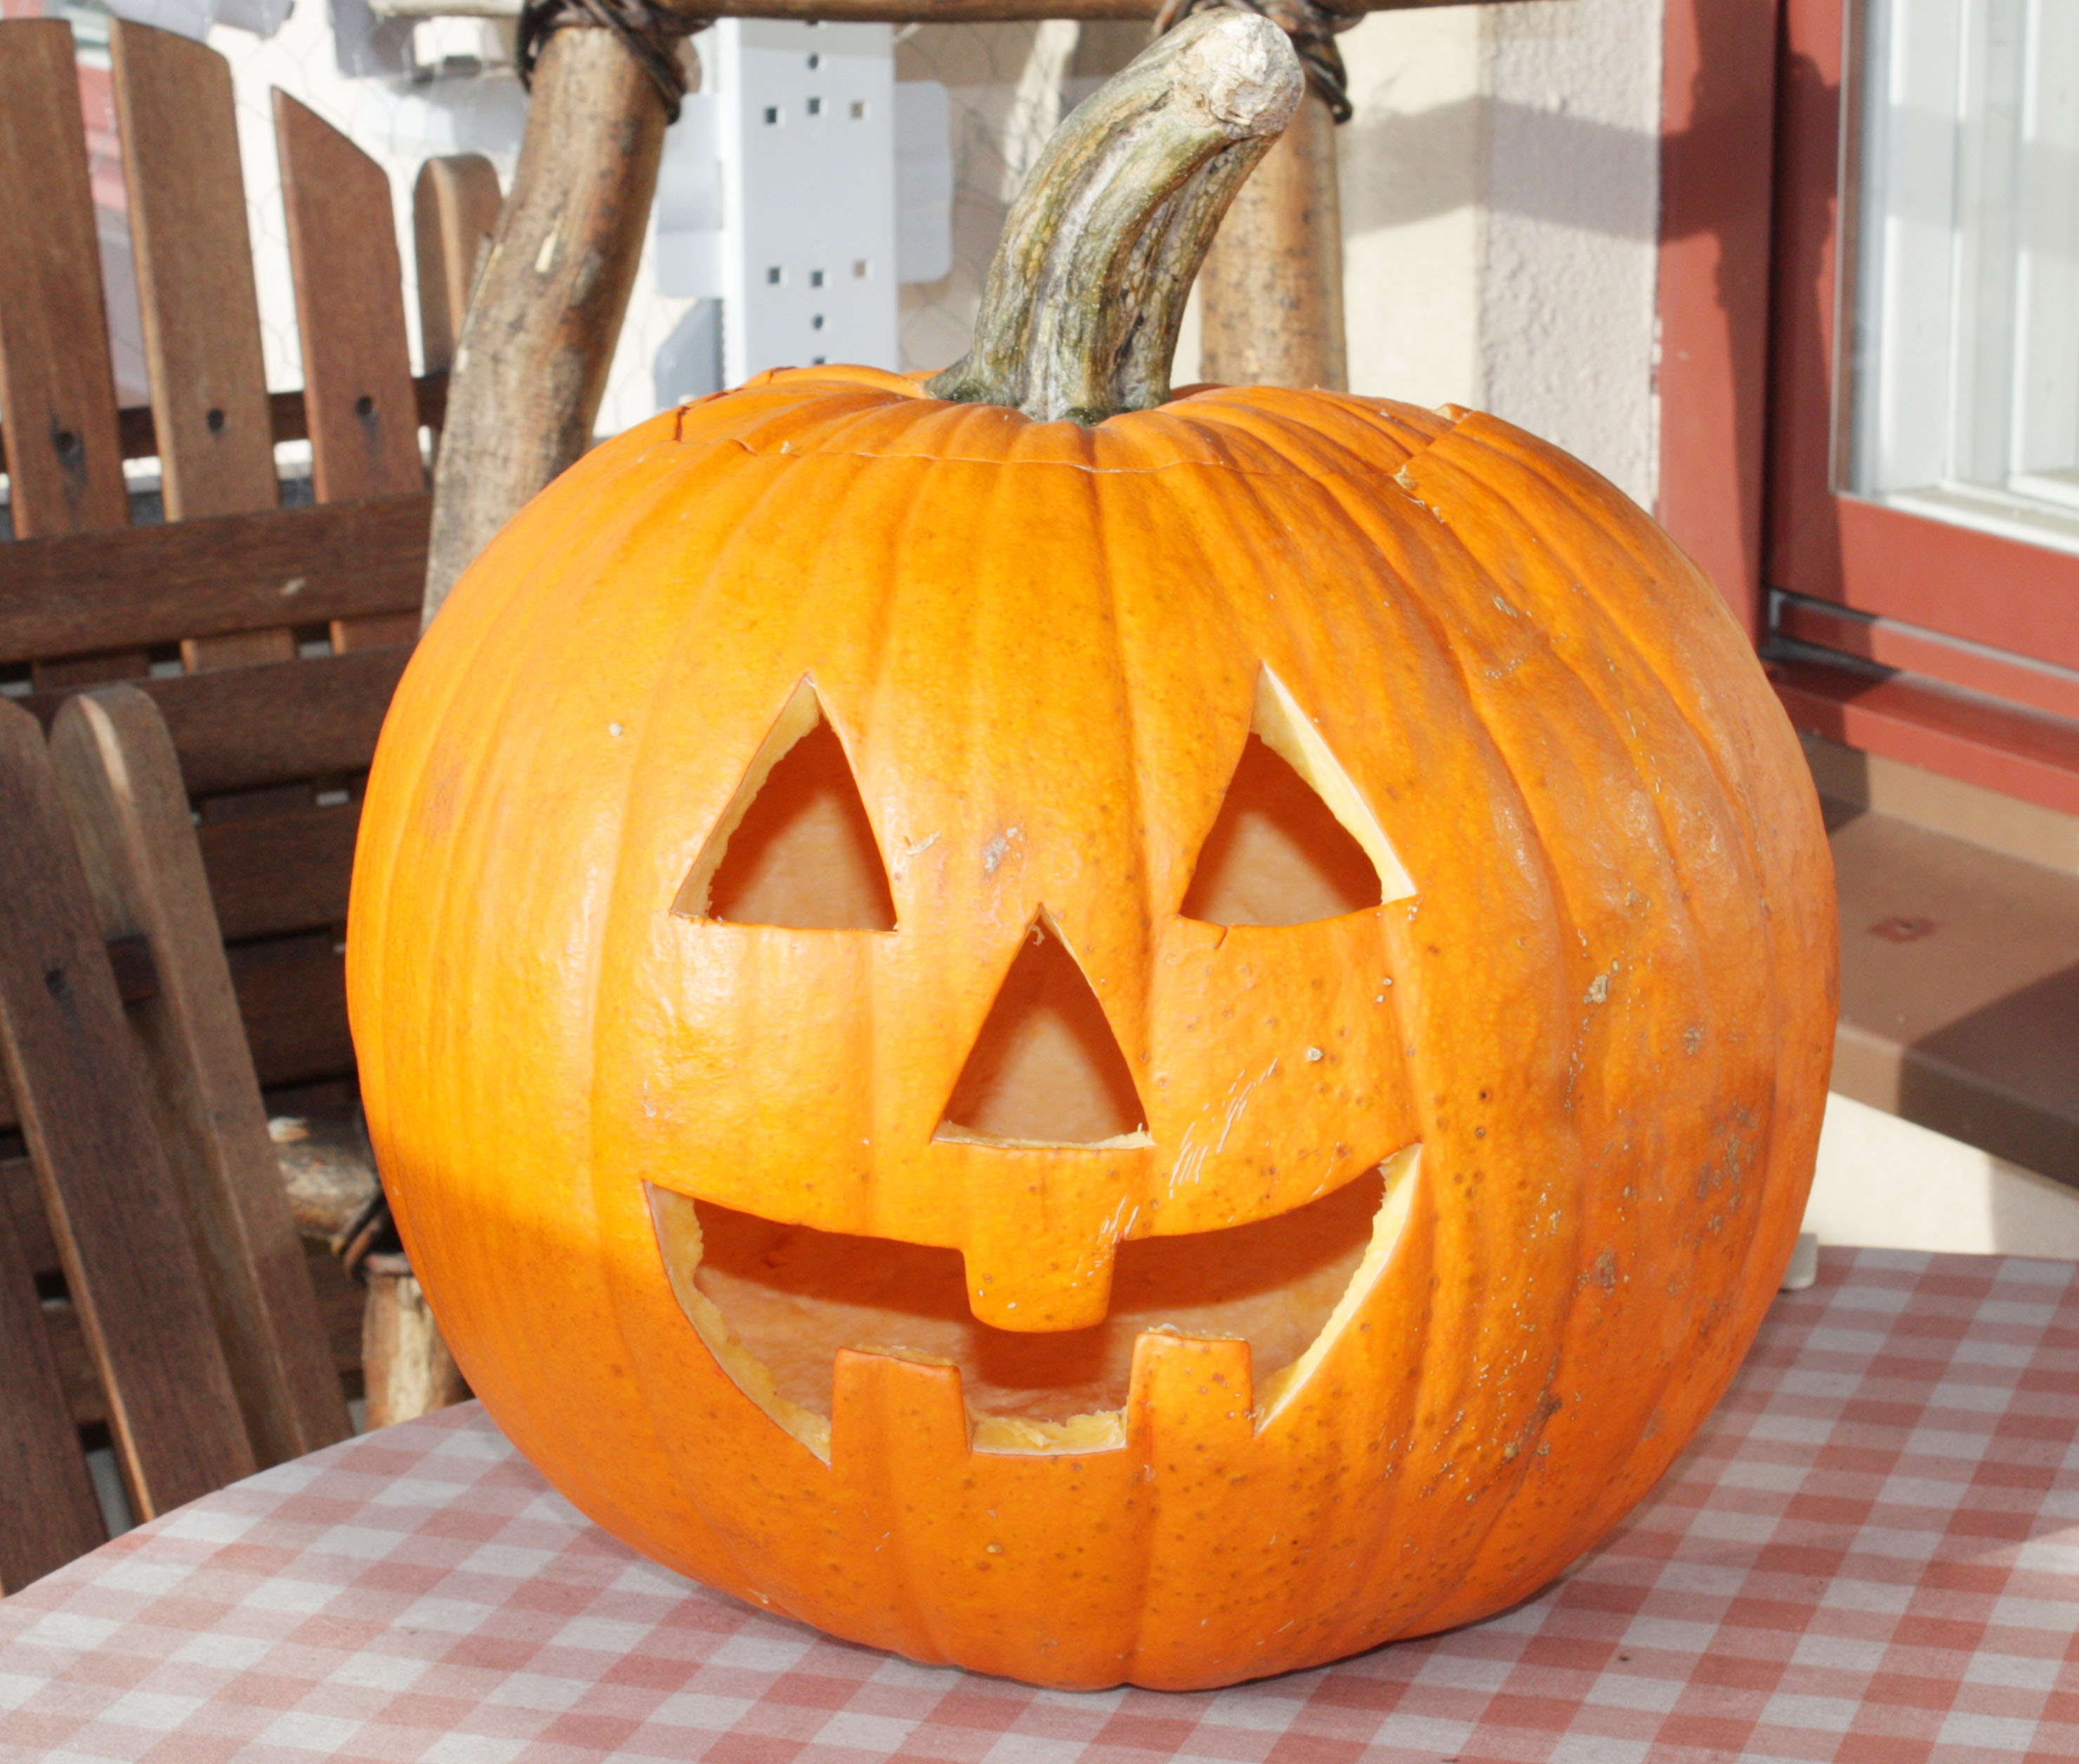 A Fun Pumpkin Carving Tutorial! - McSweeney's Internet Tendency